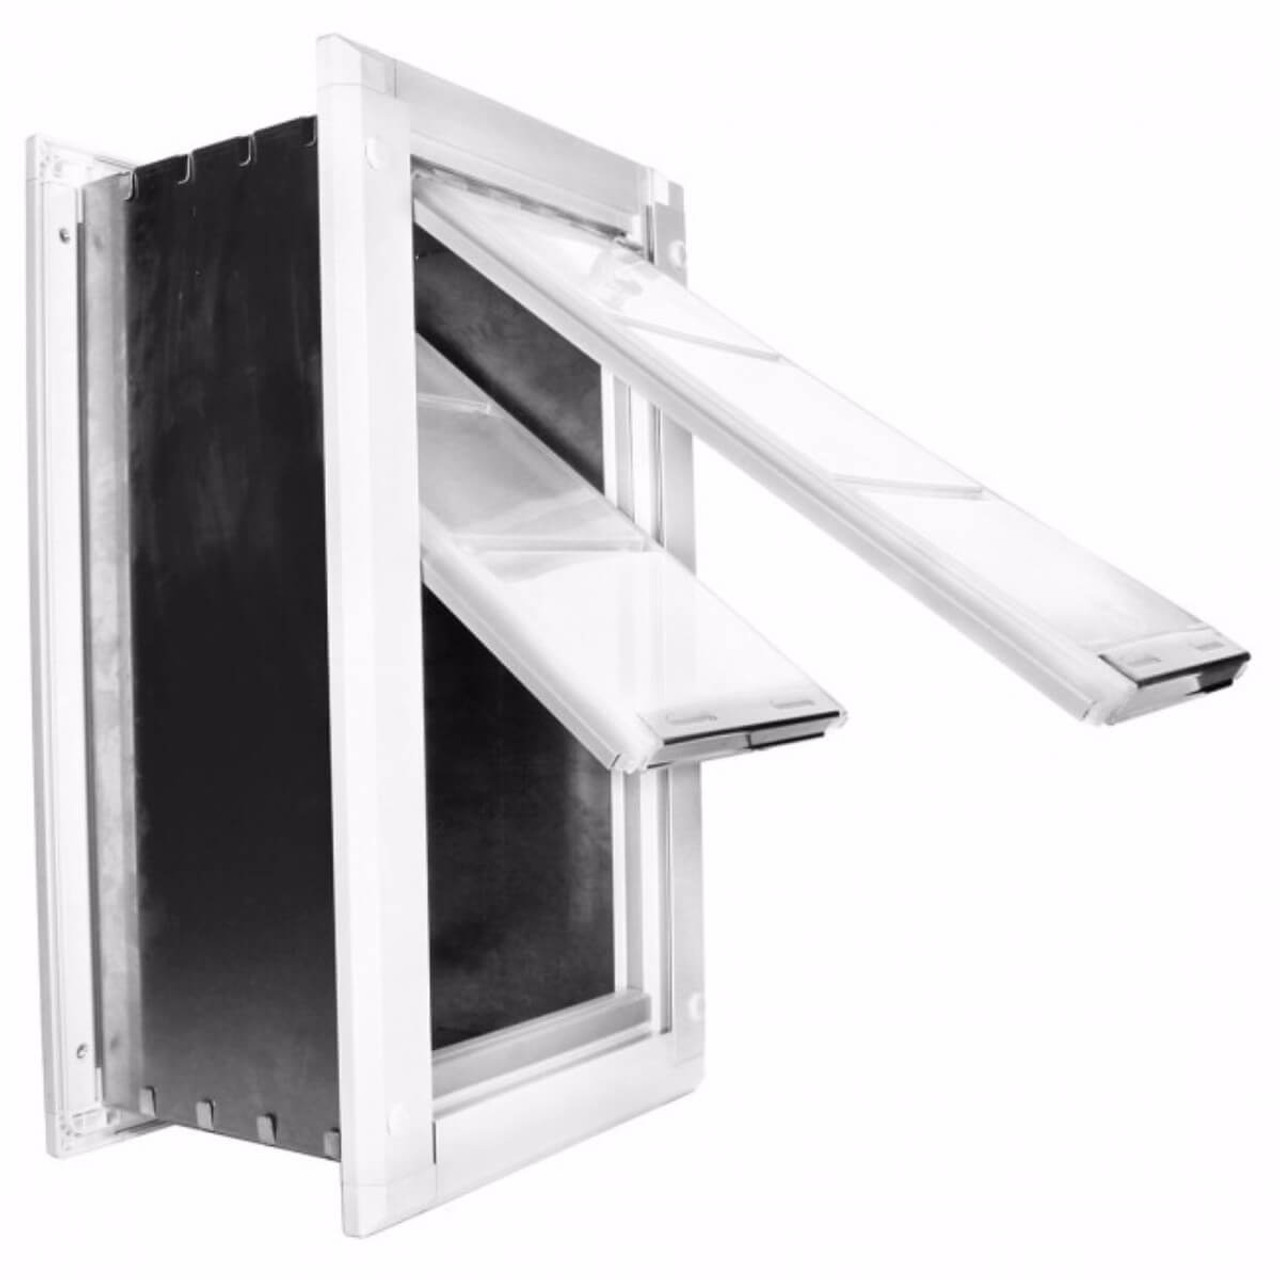 Top 5 Best Dog Pet Doors 2019 Reviews & Buyer's Guide ...